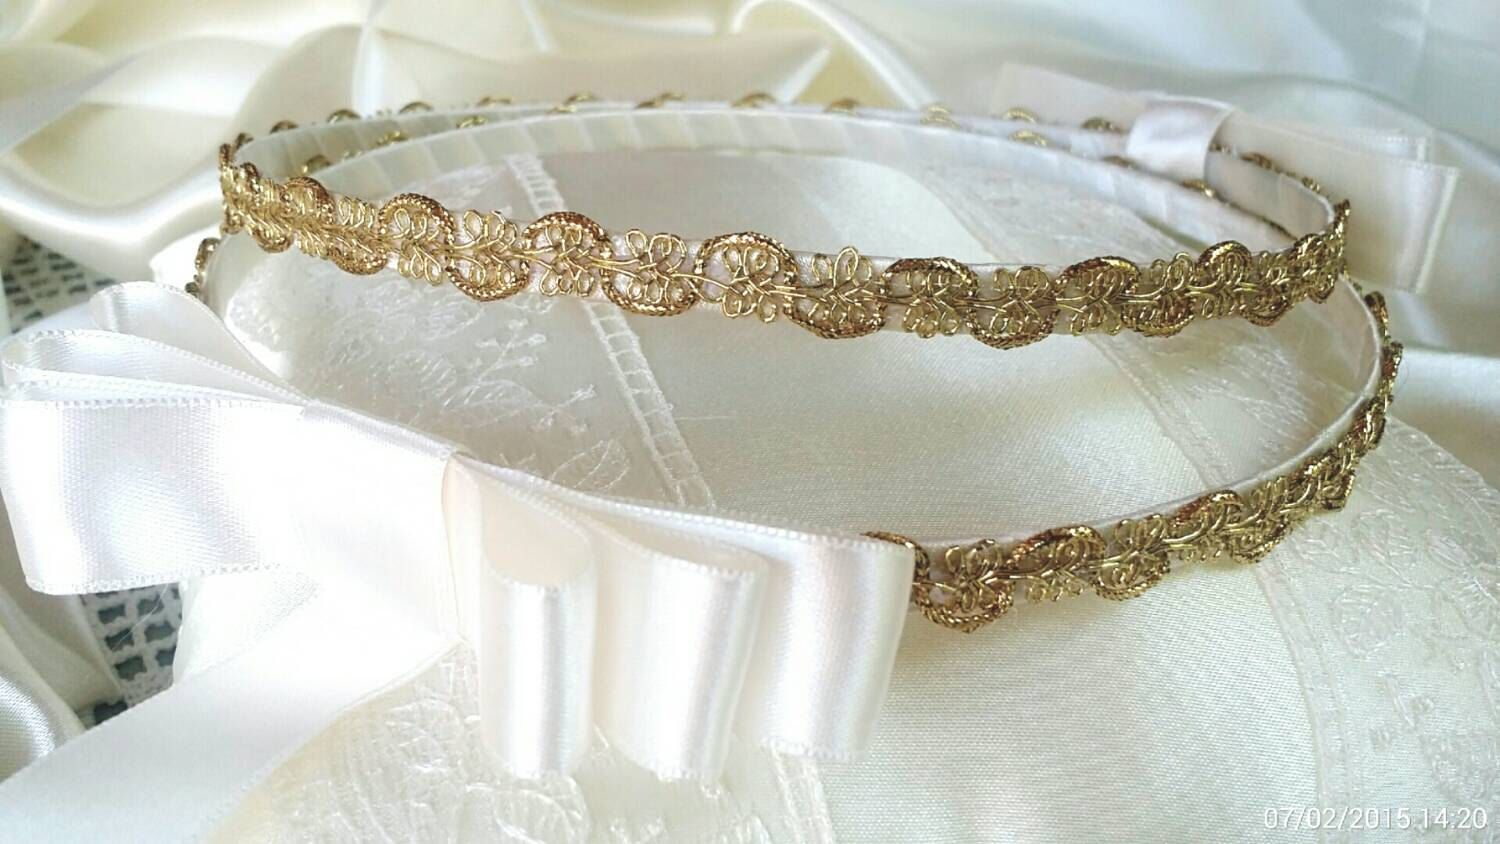 Greek STEFANA with GOLD Trim (No PILLOW). Handmade Orthodox Wedding Crowns / Tiaras by Heraeventstore on Etsy https://www.etsy.com/listing/239009641/greek-stefana-with-gold-trim-no-pillow